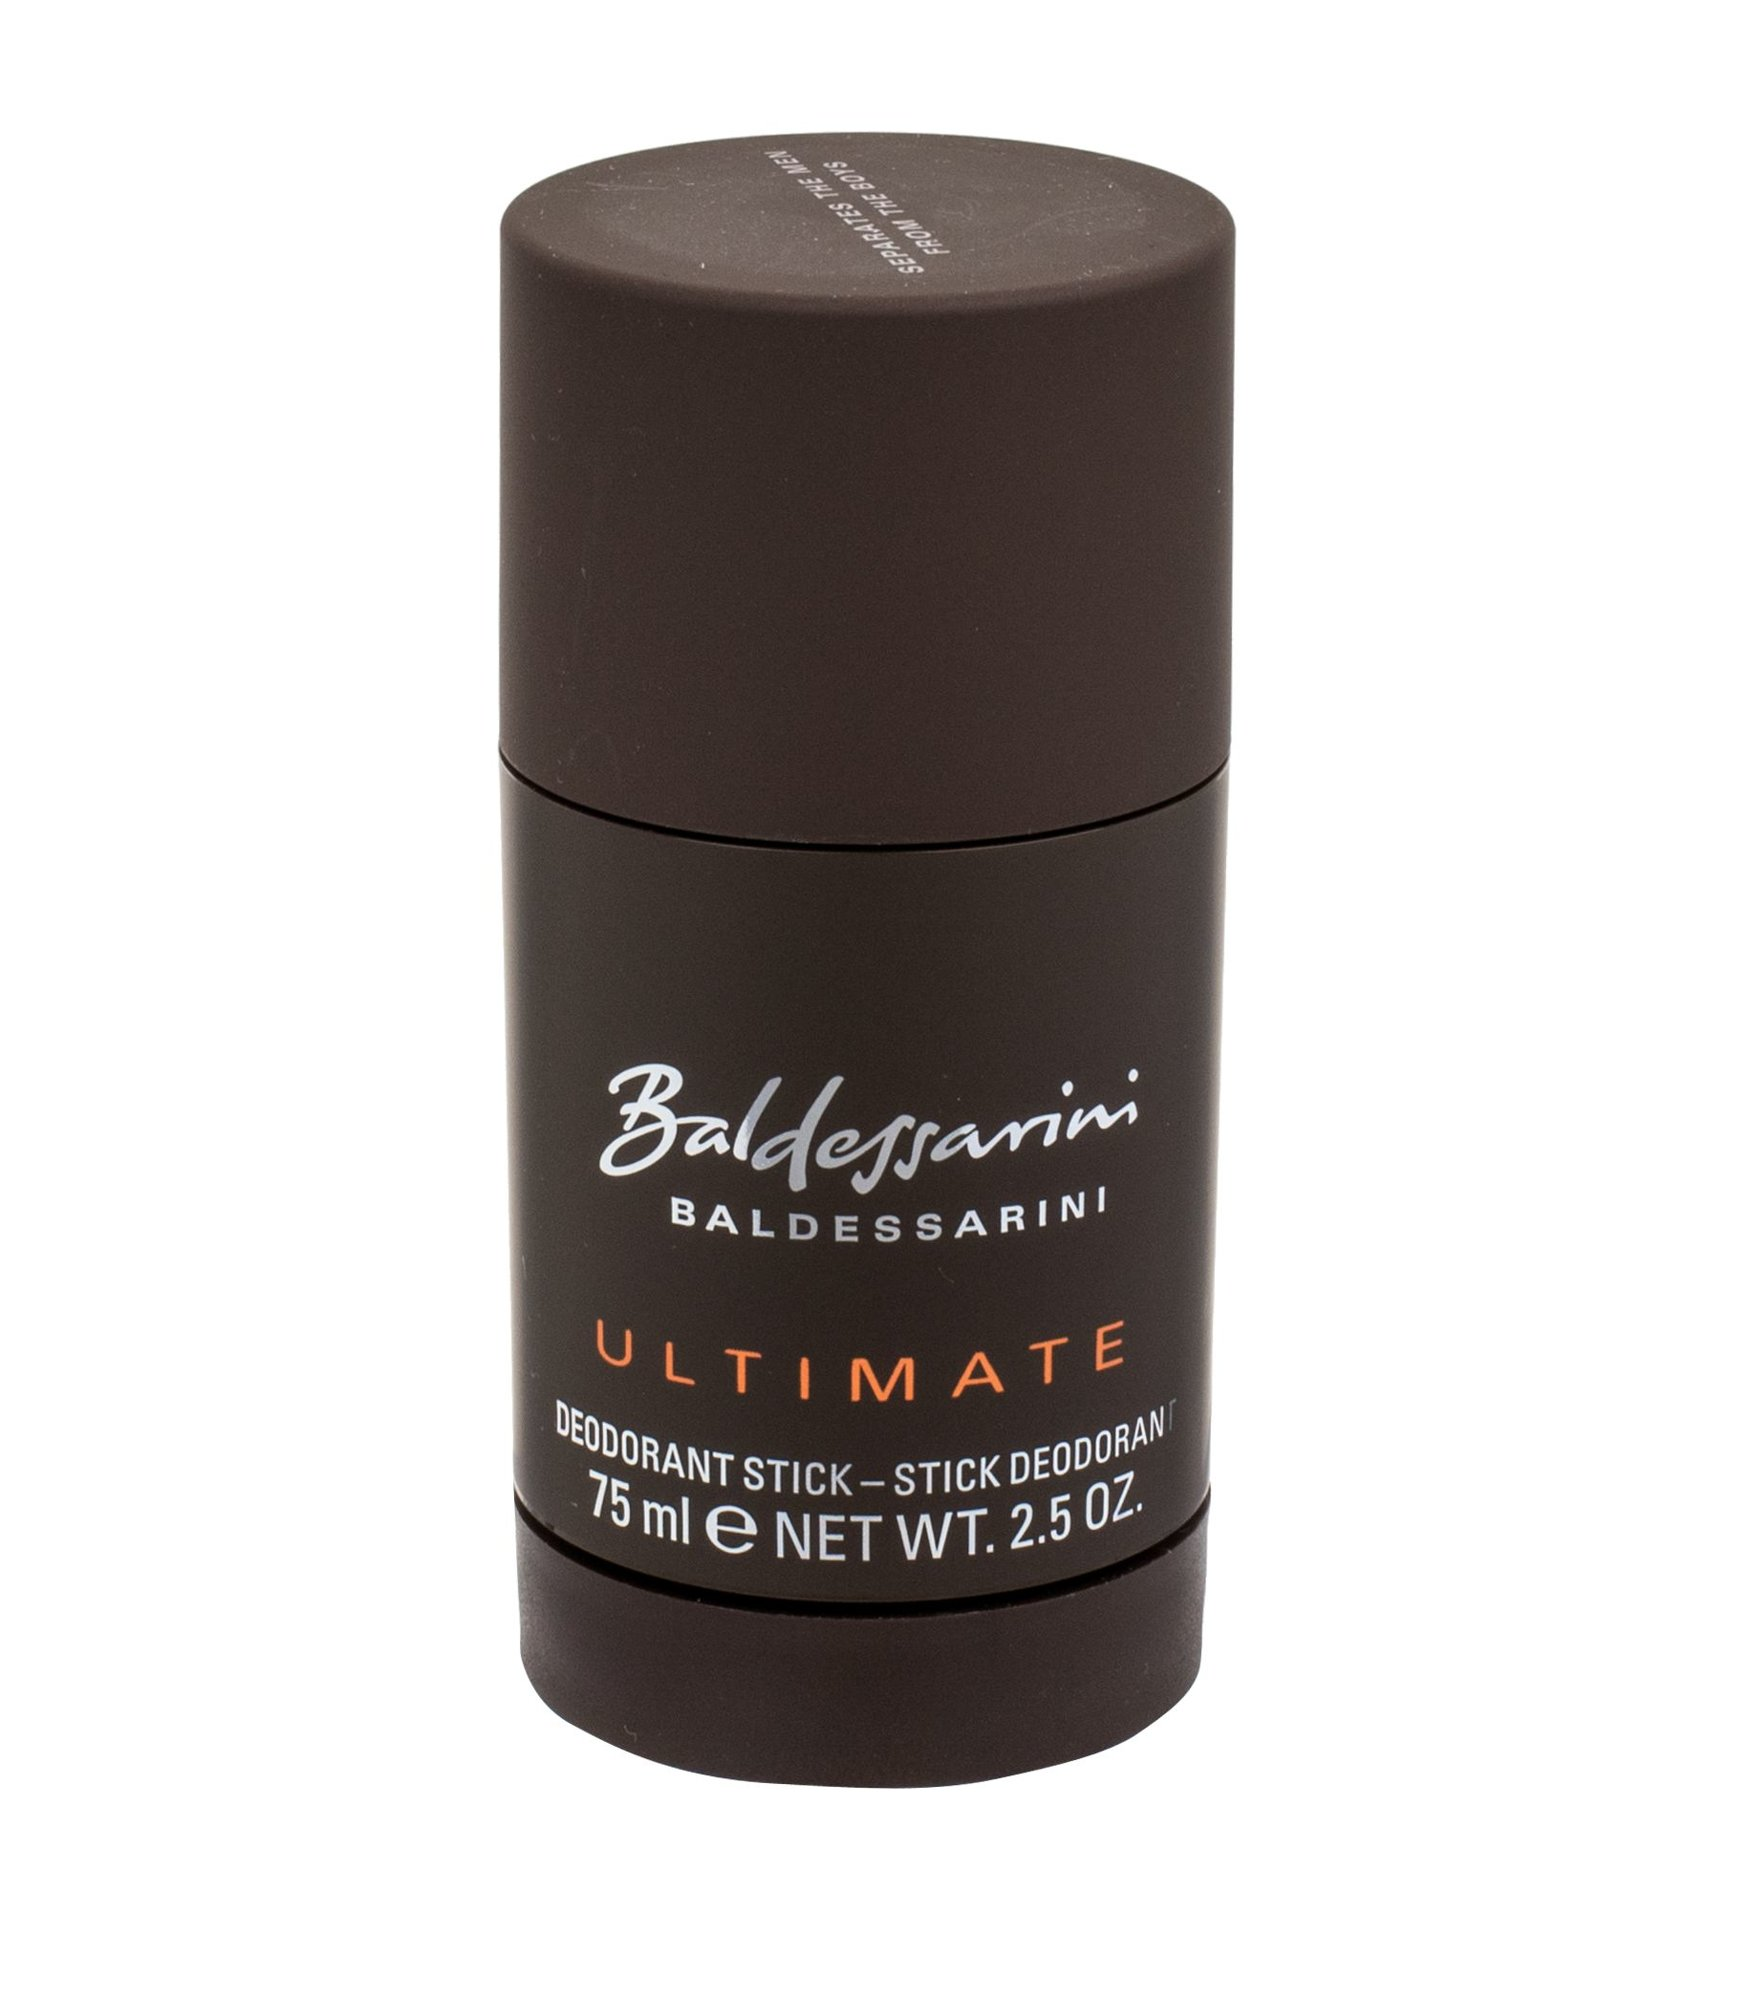 Baldessarini Ultimate Deostick 75ml